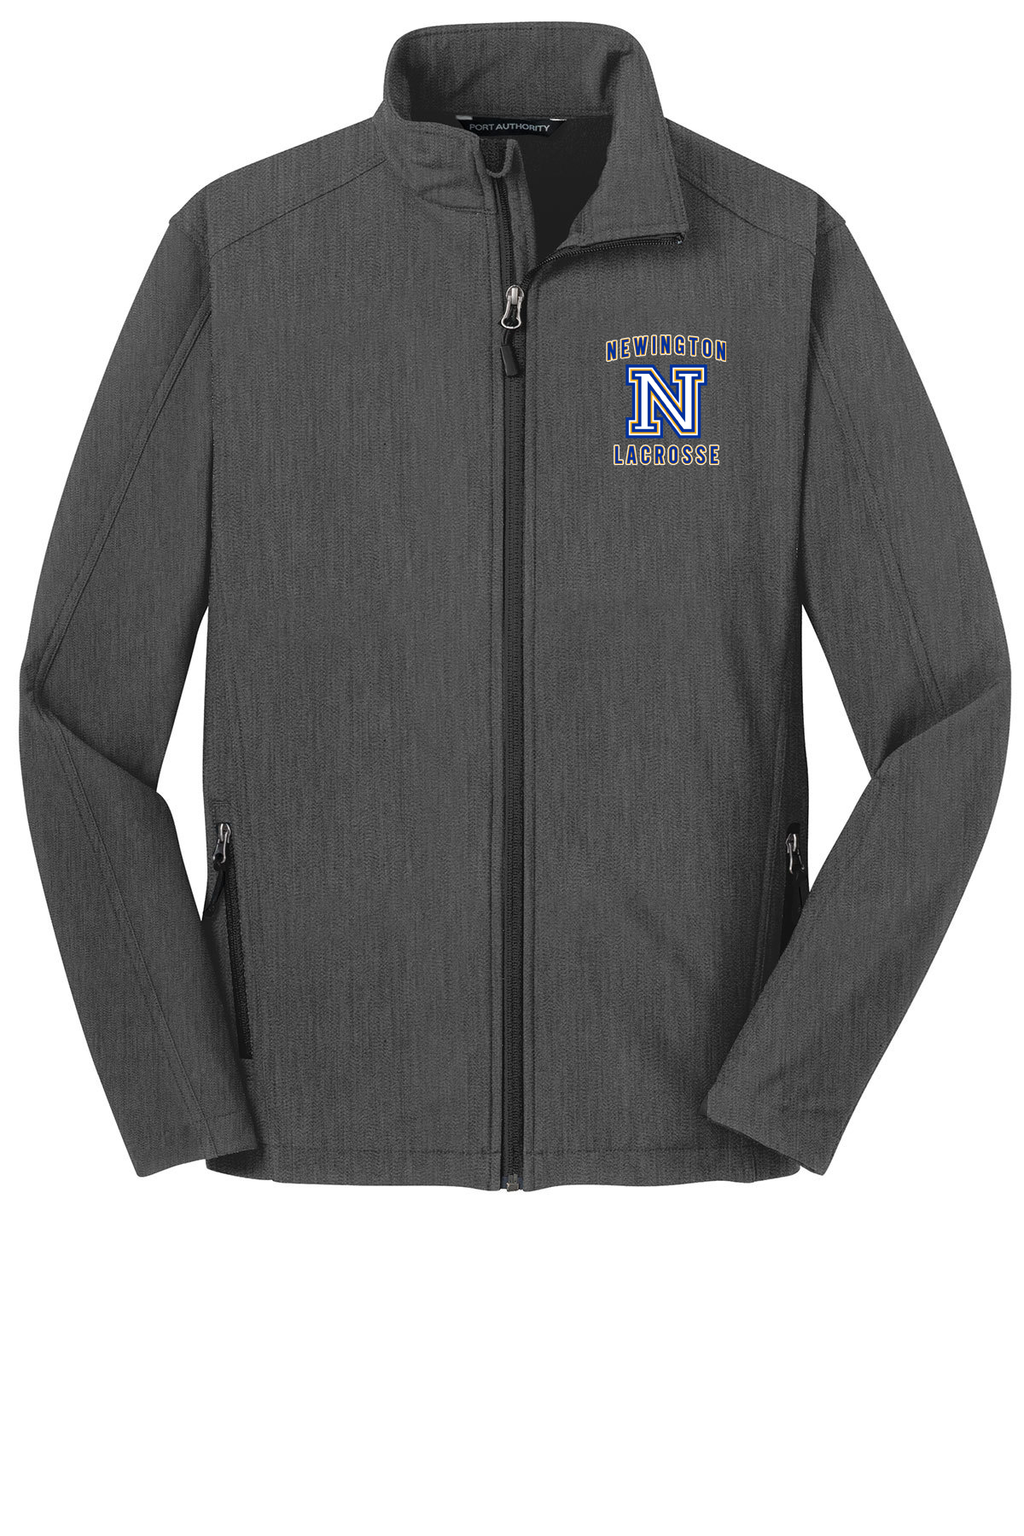 Newington Lacrosse Charcoal Soft Shell Jacket